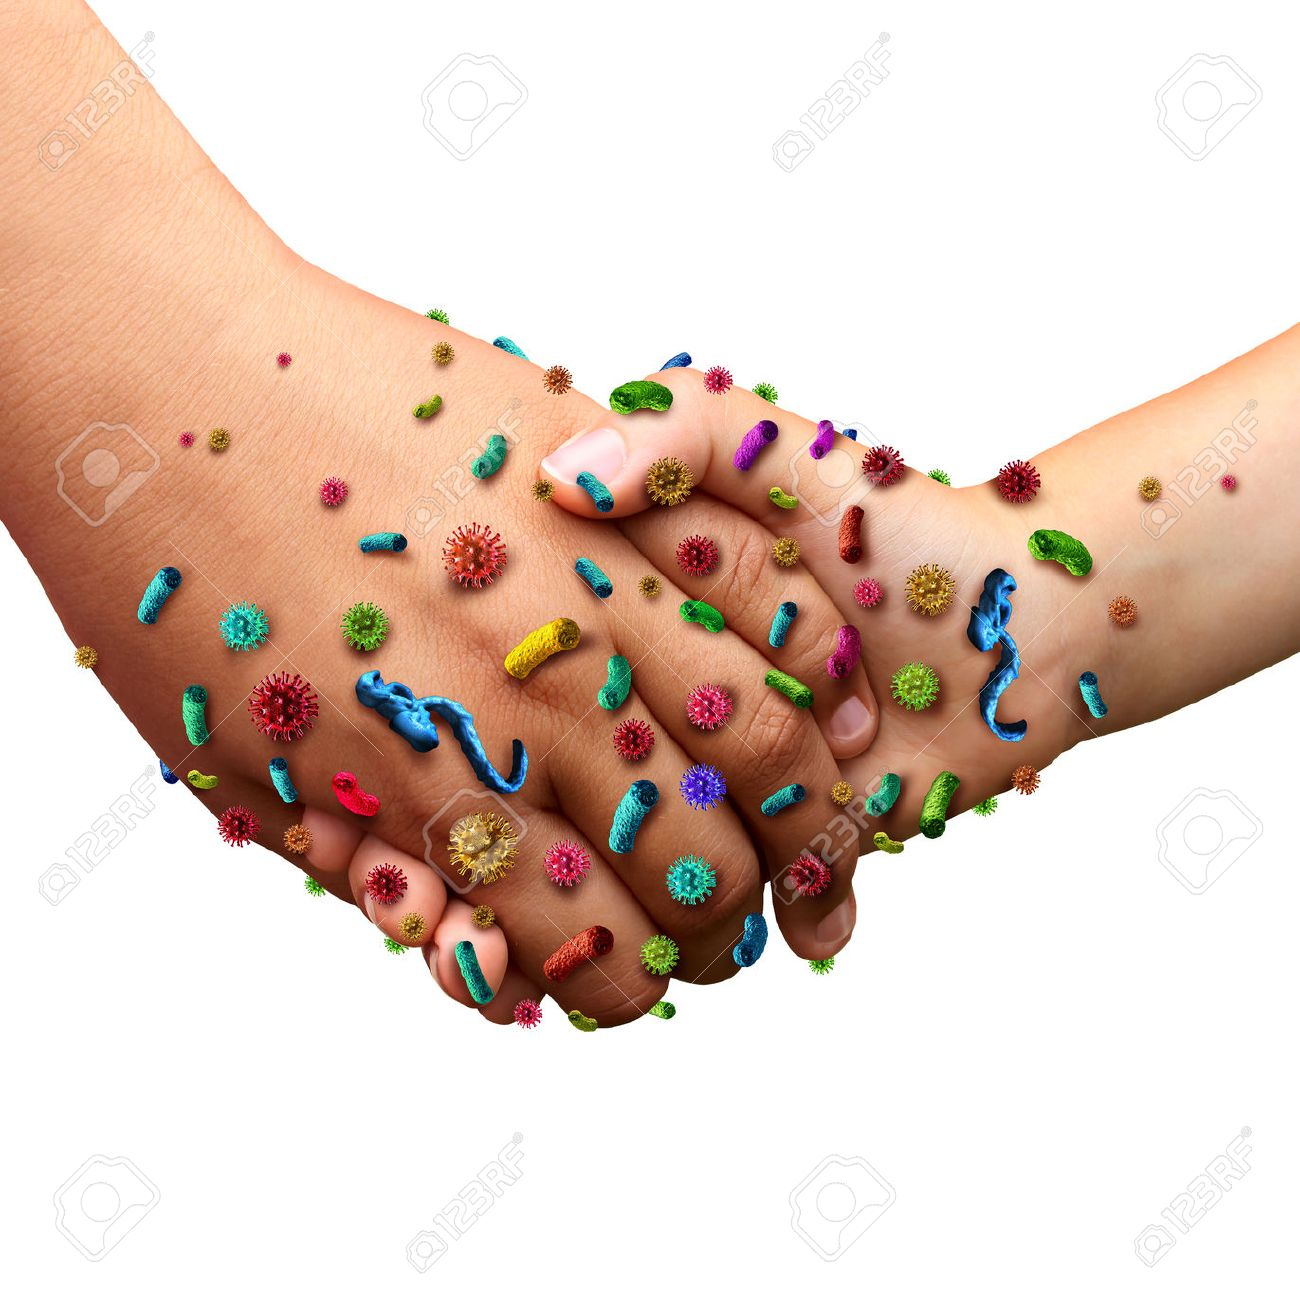 Infectious diseases spread hygiene concept as people holding hands with germ virus and bacteria spreading with illness in public as a health care risk concept to not wash your hands as dirty infected fingers and palm with contagious pathogens. - 41506707